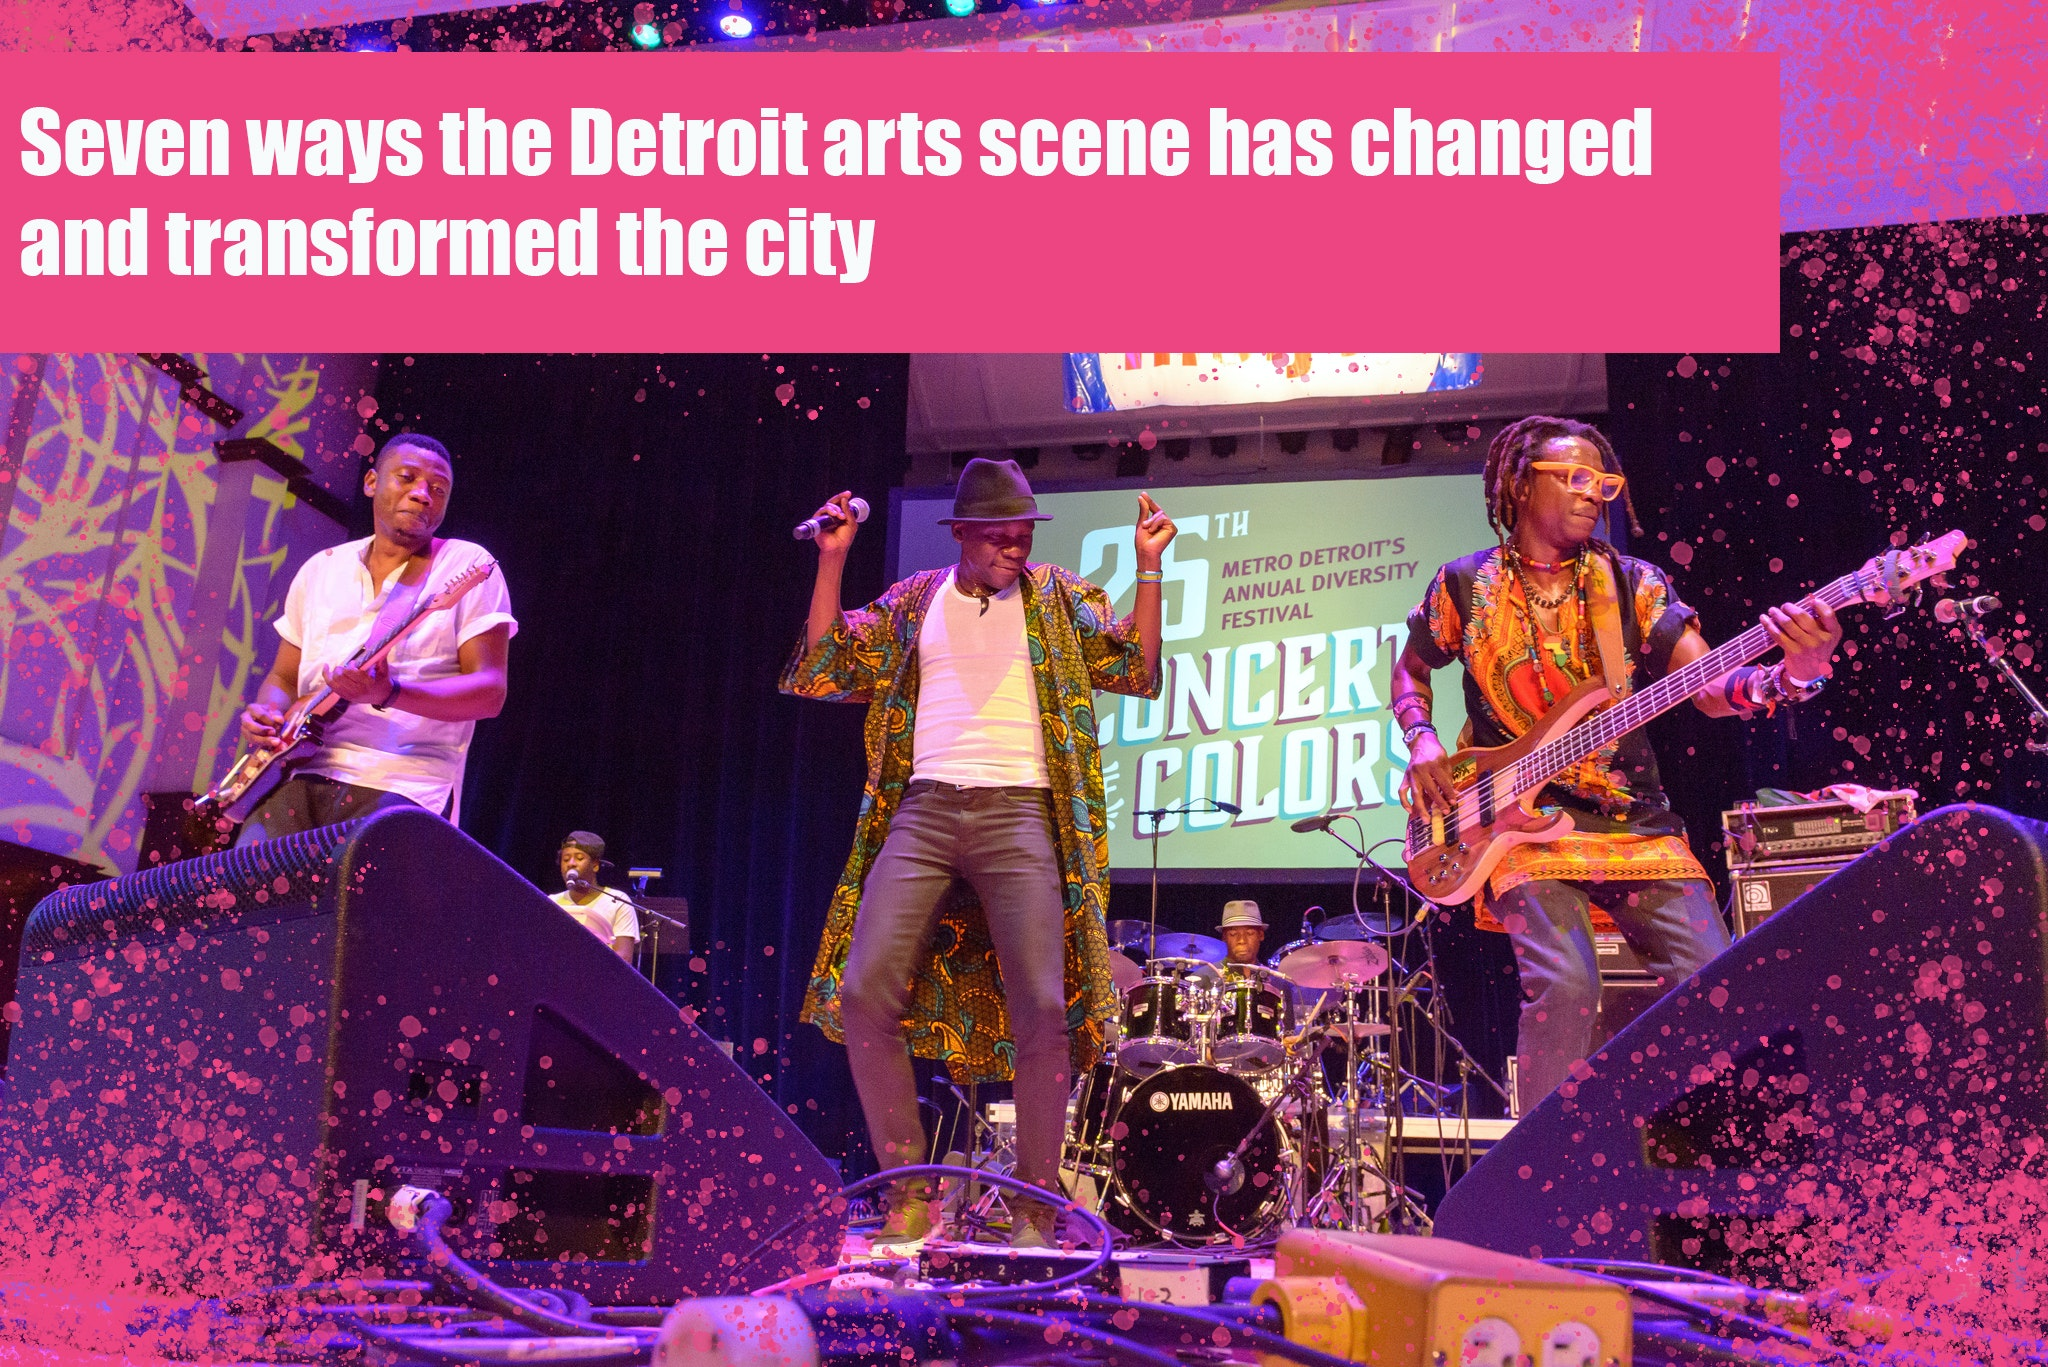 "<p><em>Read <a href=""https://kf.org/artsindetroit"" rel=""noopener noreferrer"" target=""_blank"">our blog</a> highlighting seven ways the Detroit arts ecosystem has evolved over a decade. </em></p>"